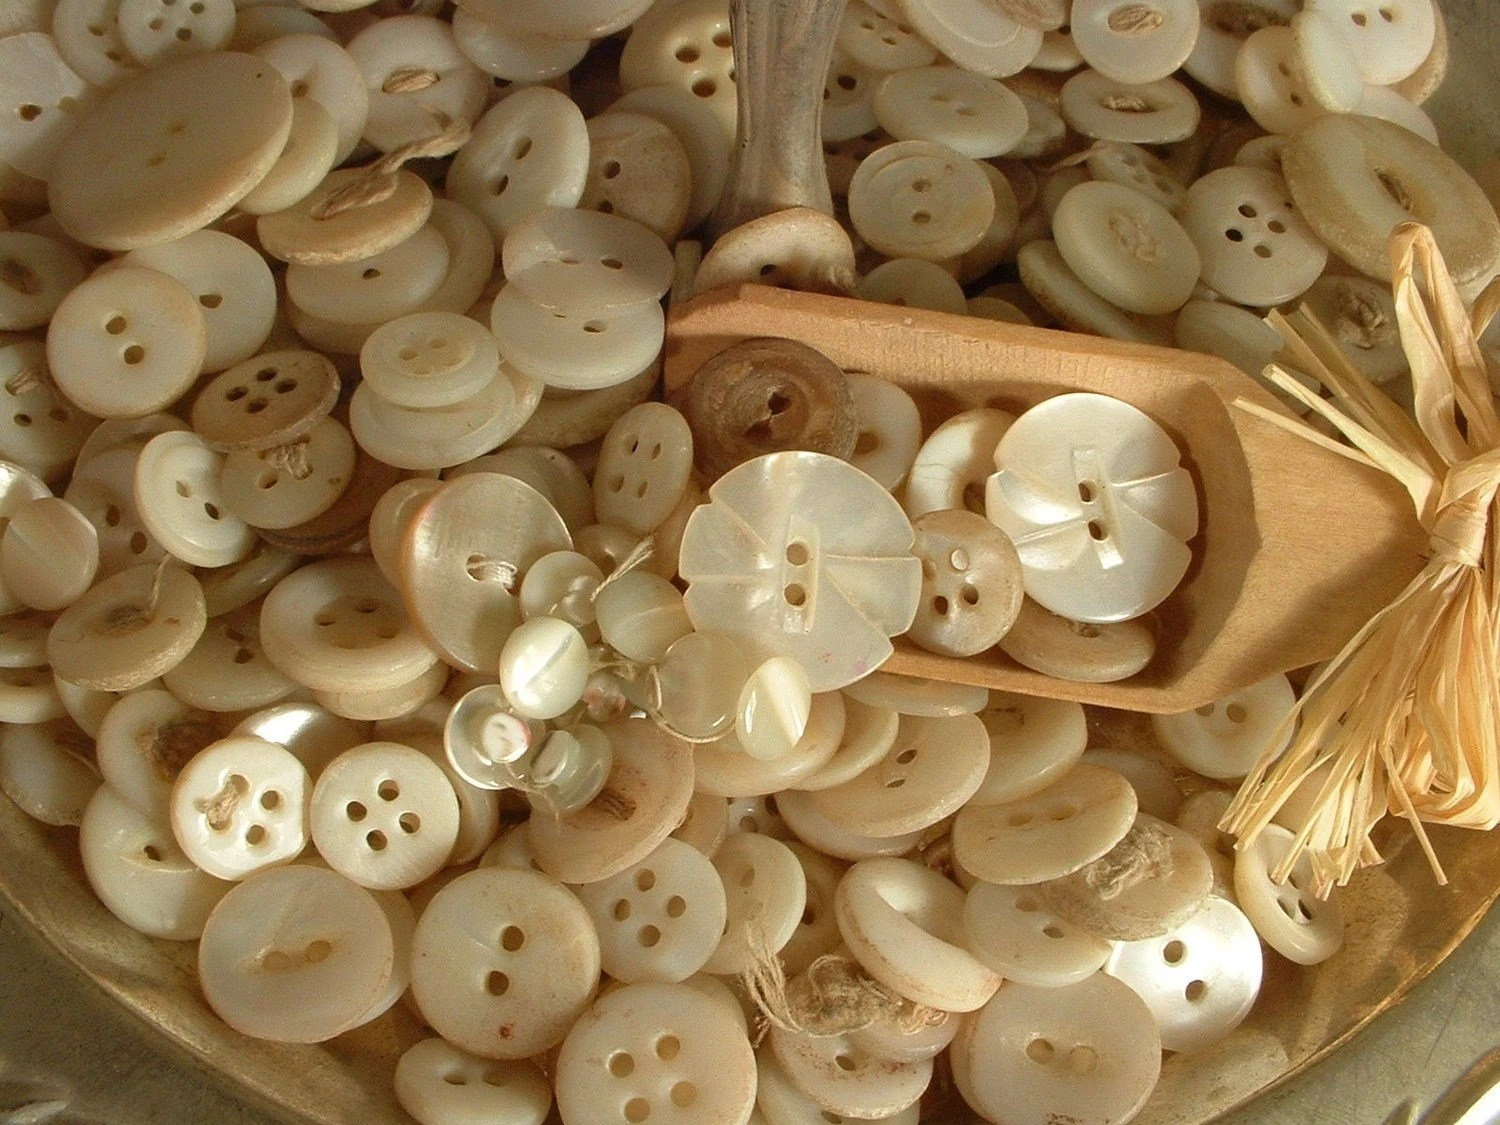 Mother of Pearl Buttons, Lot of 50 Antique Sewing Buttons - AmoreTreasure